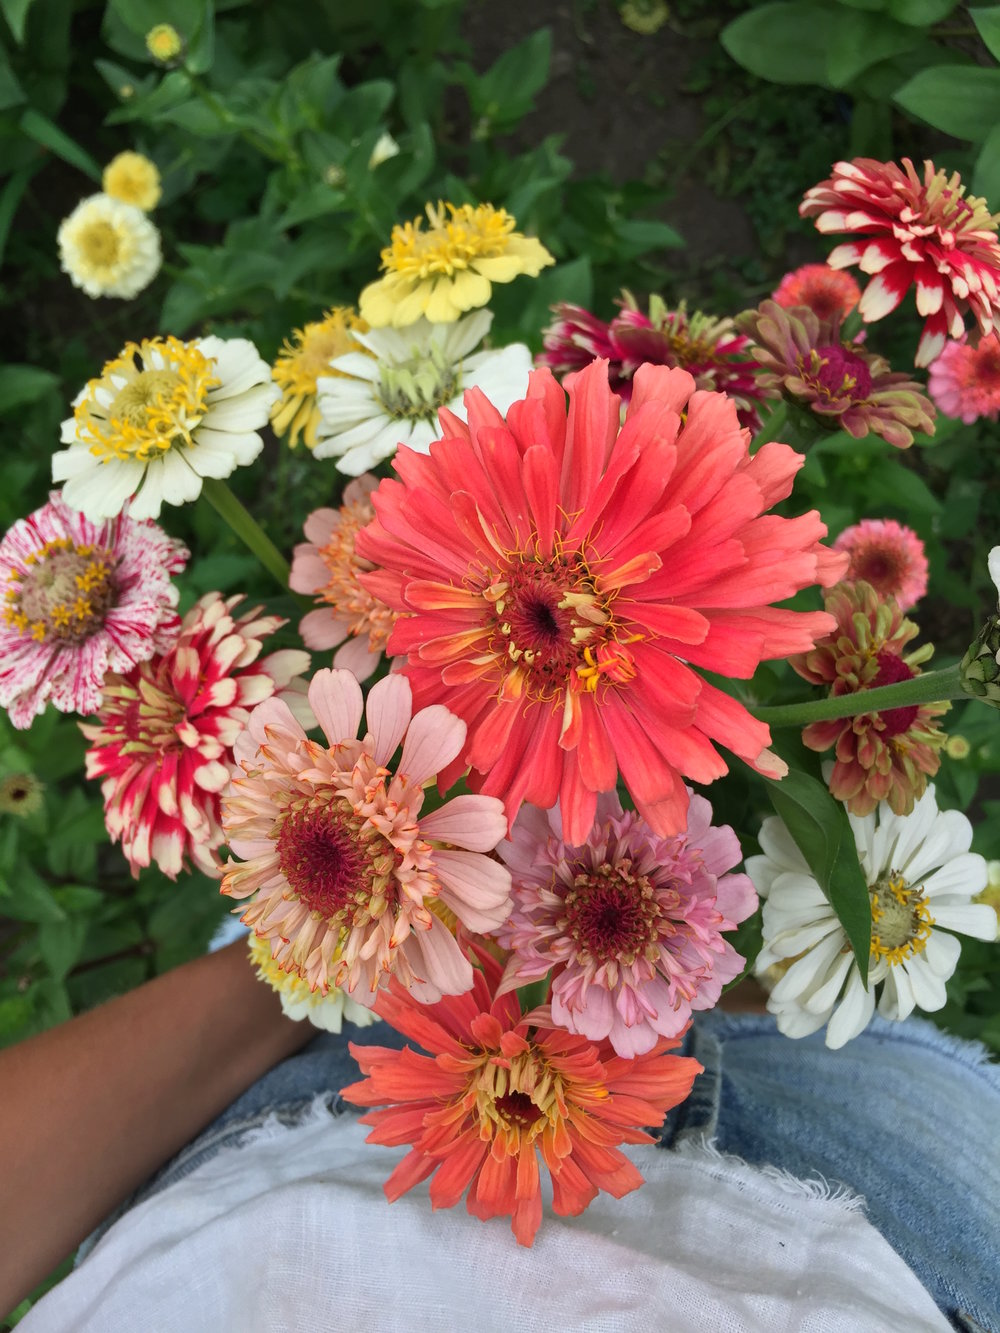 zinnias above copy 2.jpg